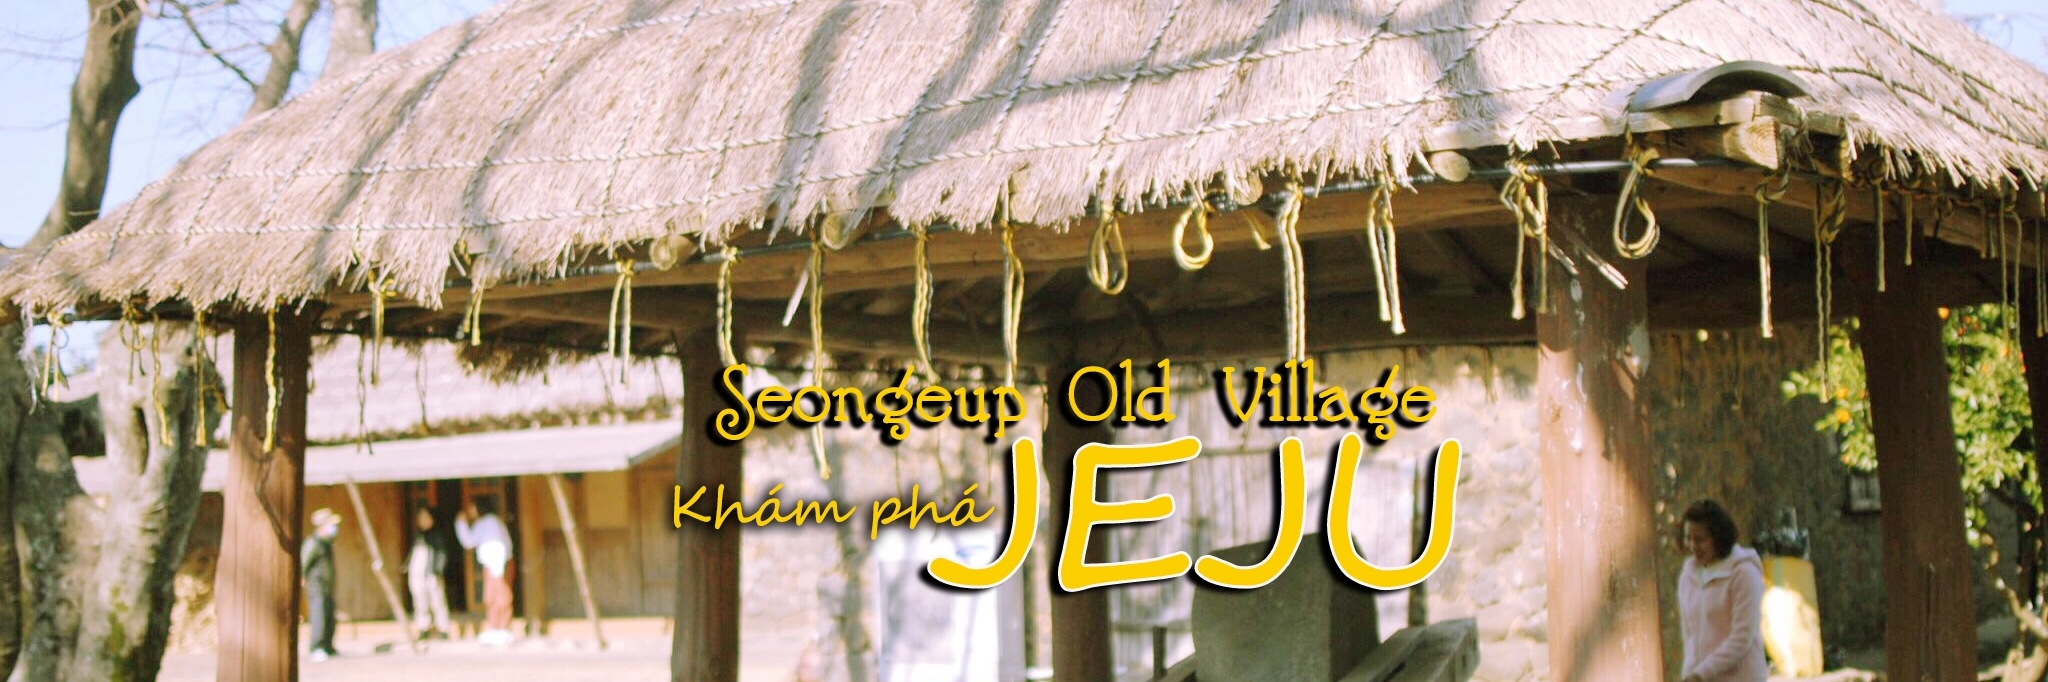 https://gody.vn/blog/vanhaitlhb231322/post/lang-thang-jeju-do-seongeup-old-village-6234